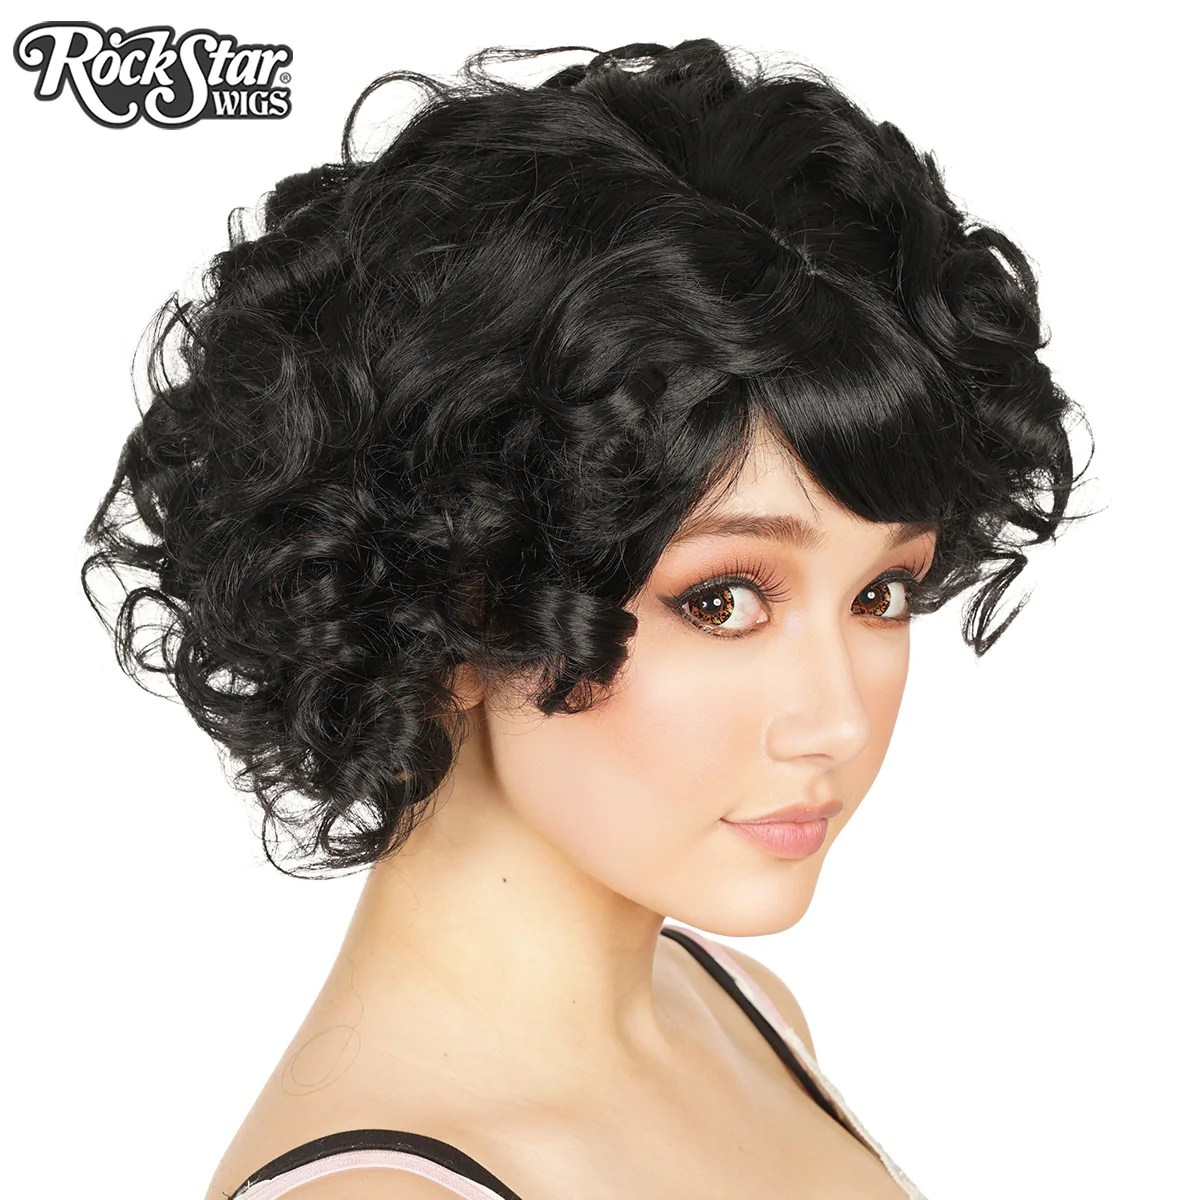 Gothic Lolita Wigs Curly Bob Black Mix Dolluxe